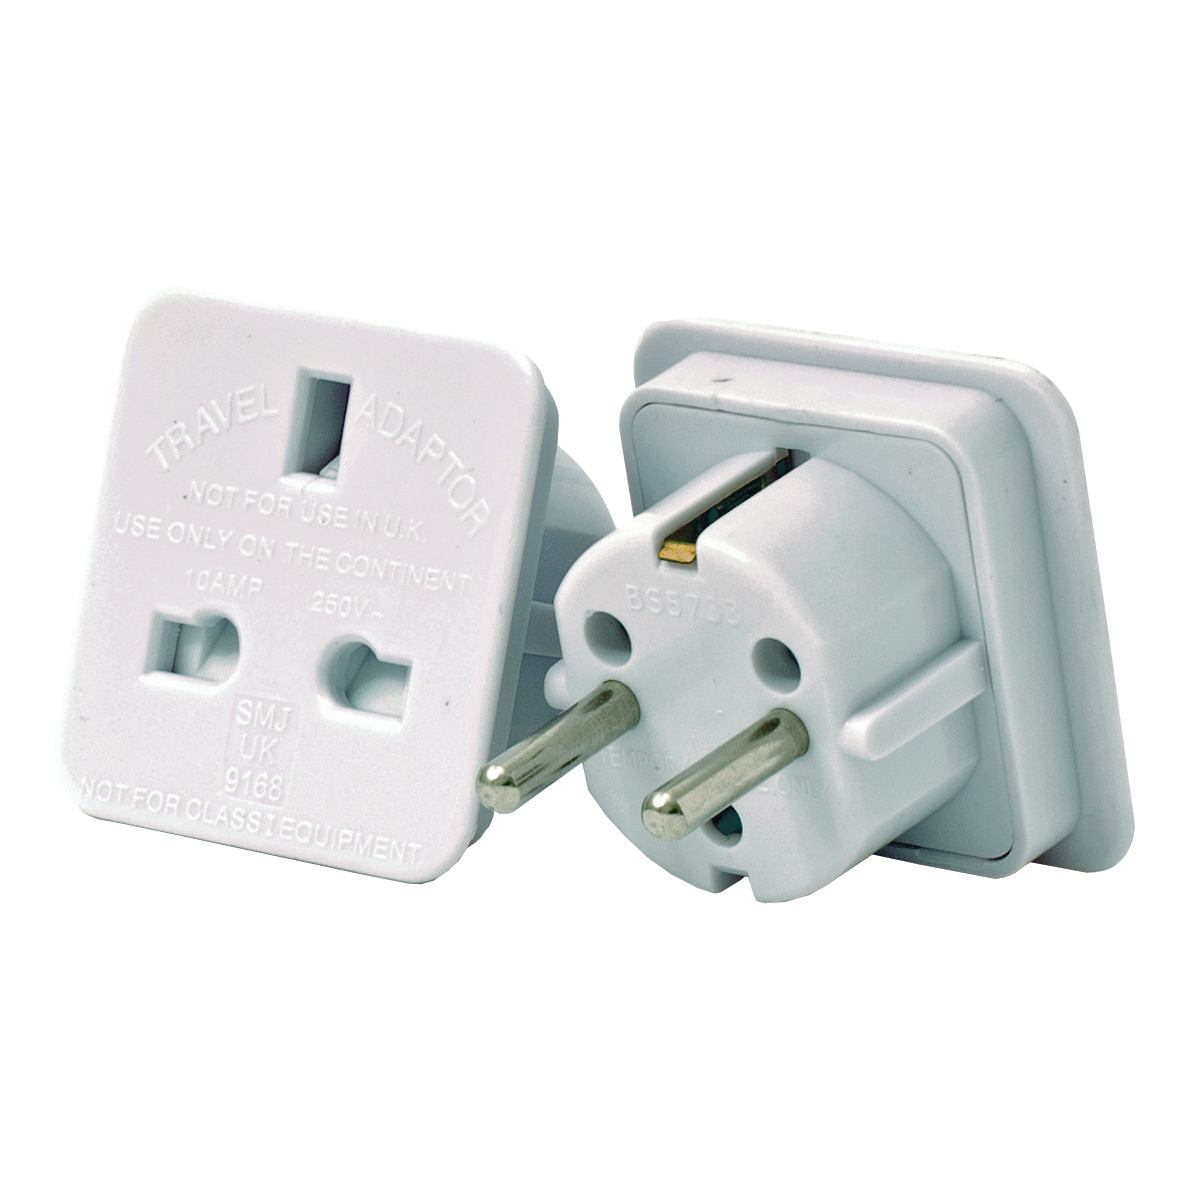 Power adapters or inverters UK to European Travel Adaptor Pack 2